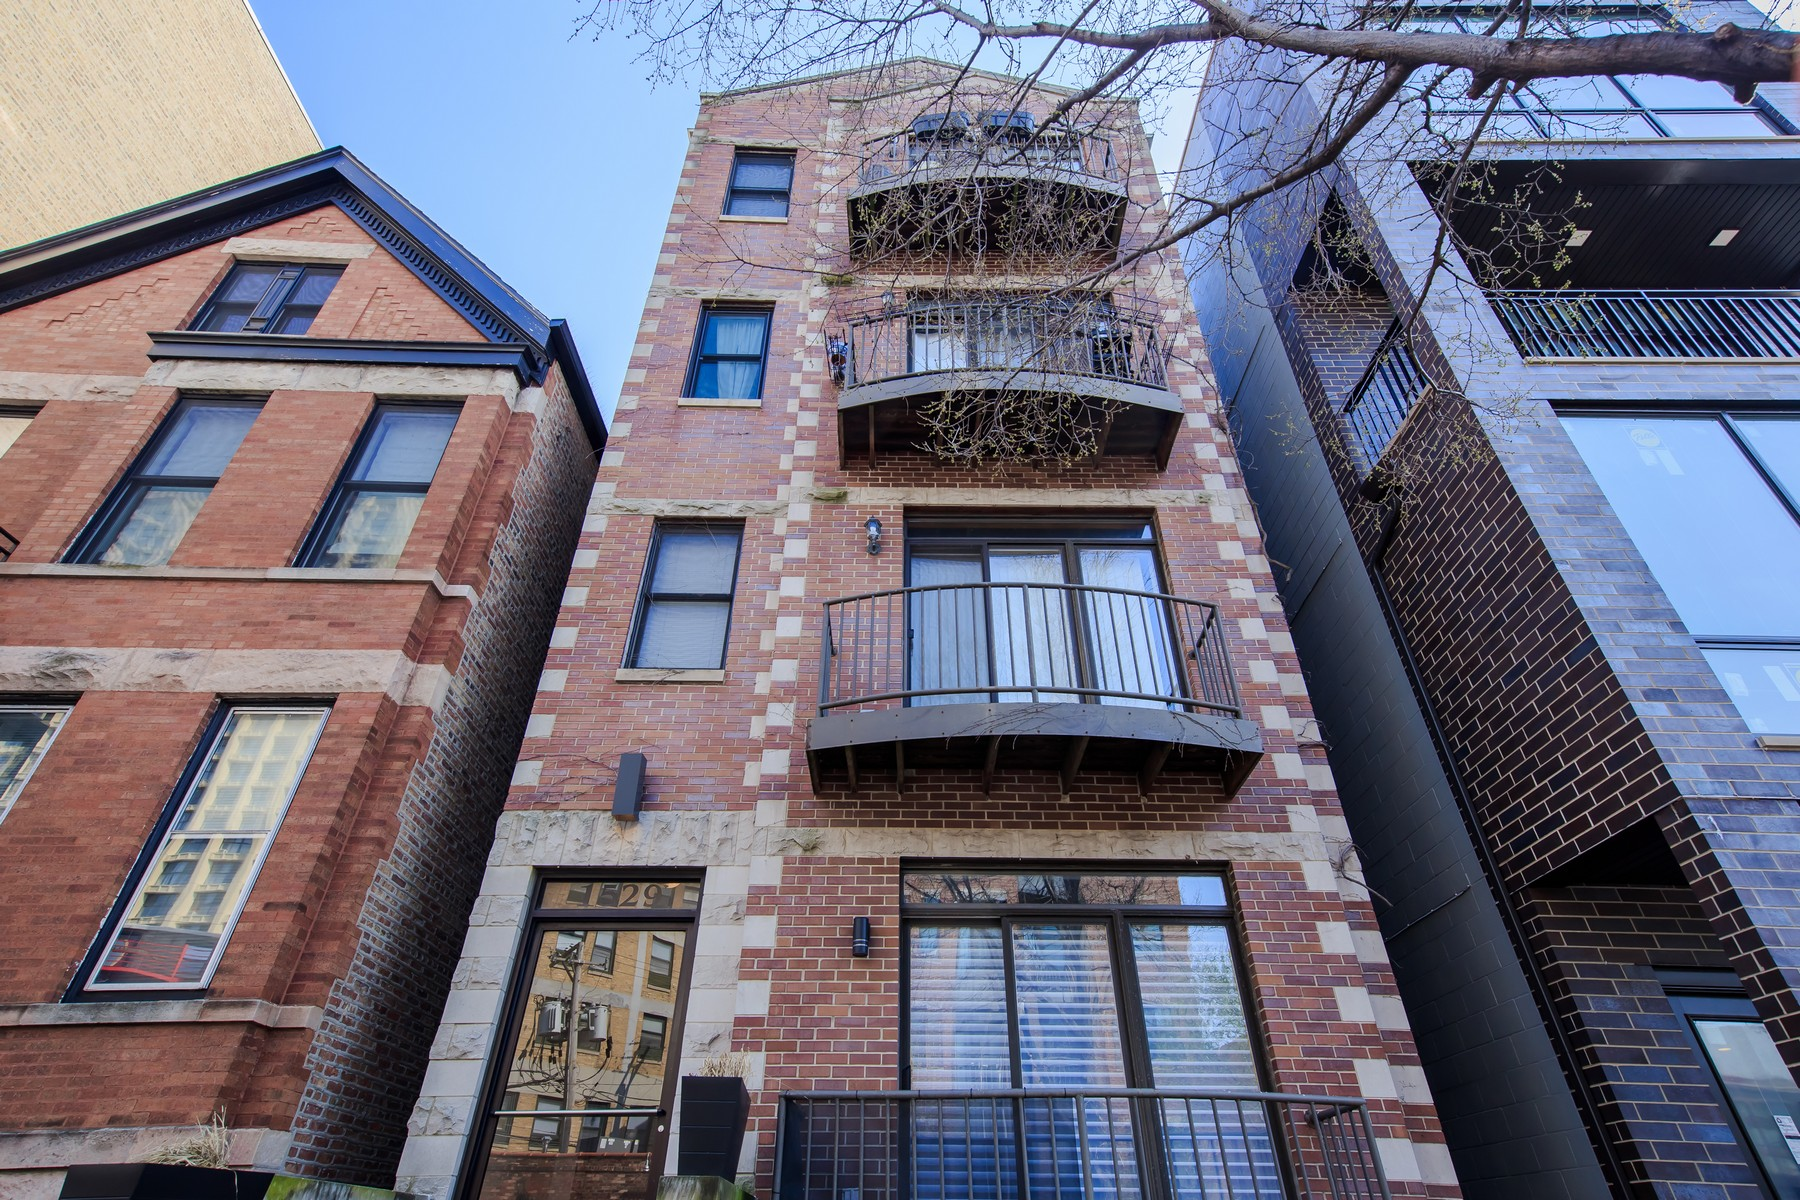 Condomínio para Venda às Enormous Duplex-Down 1529 W Haddon Avenue Unit 1A Chicago, Illinois, 60642 Estados Unidos